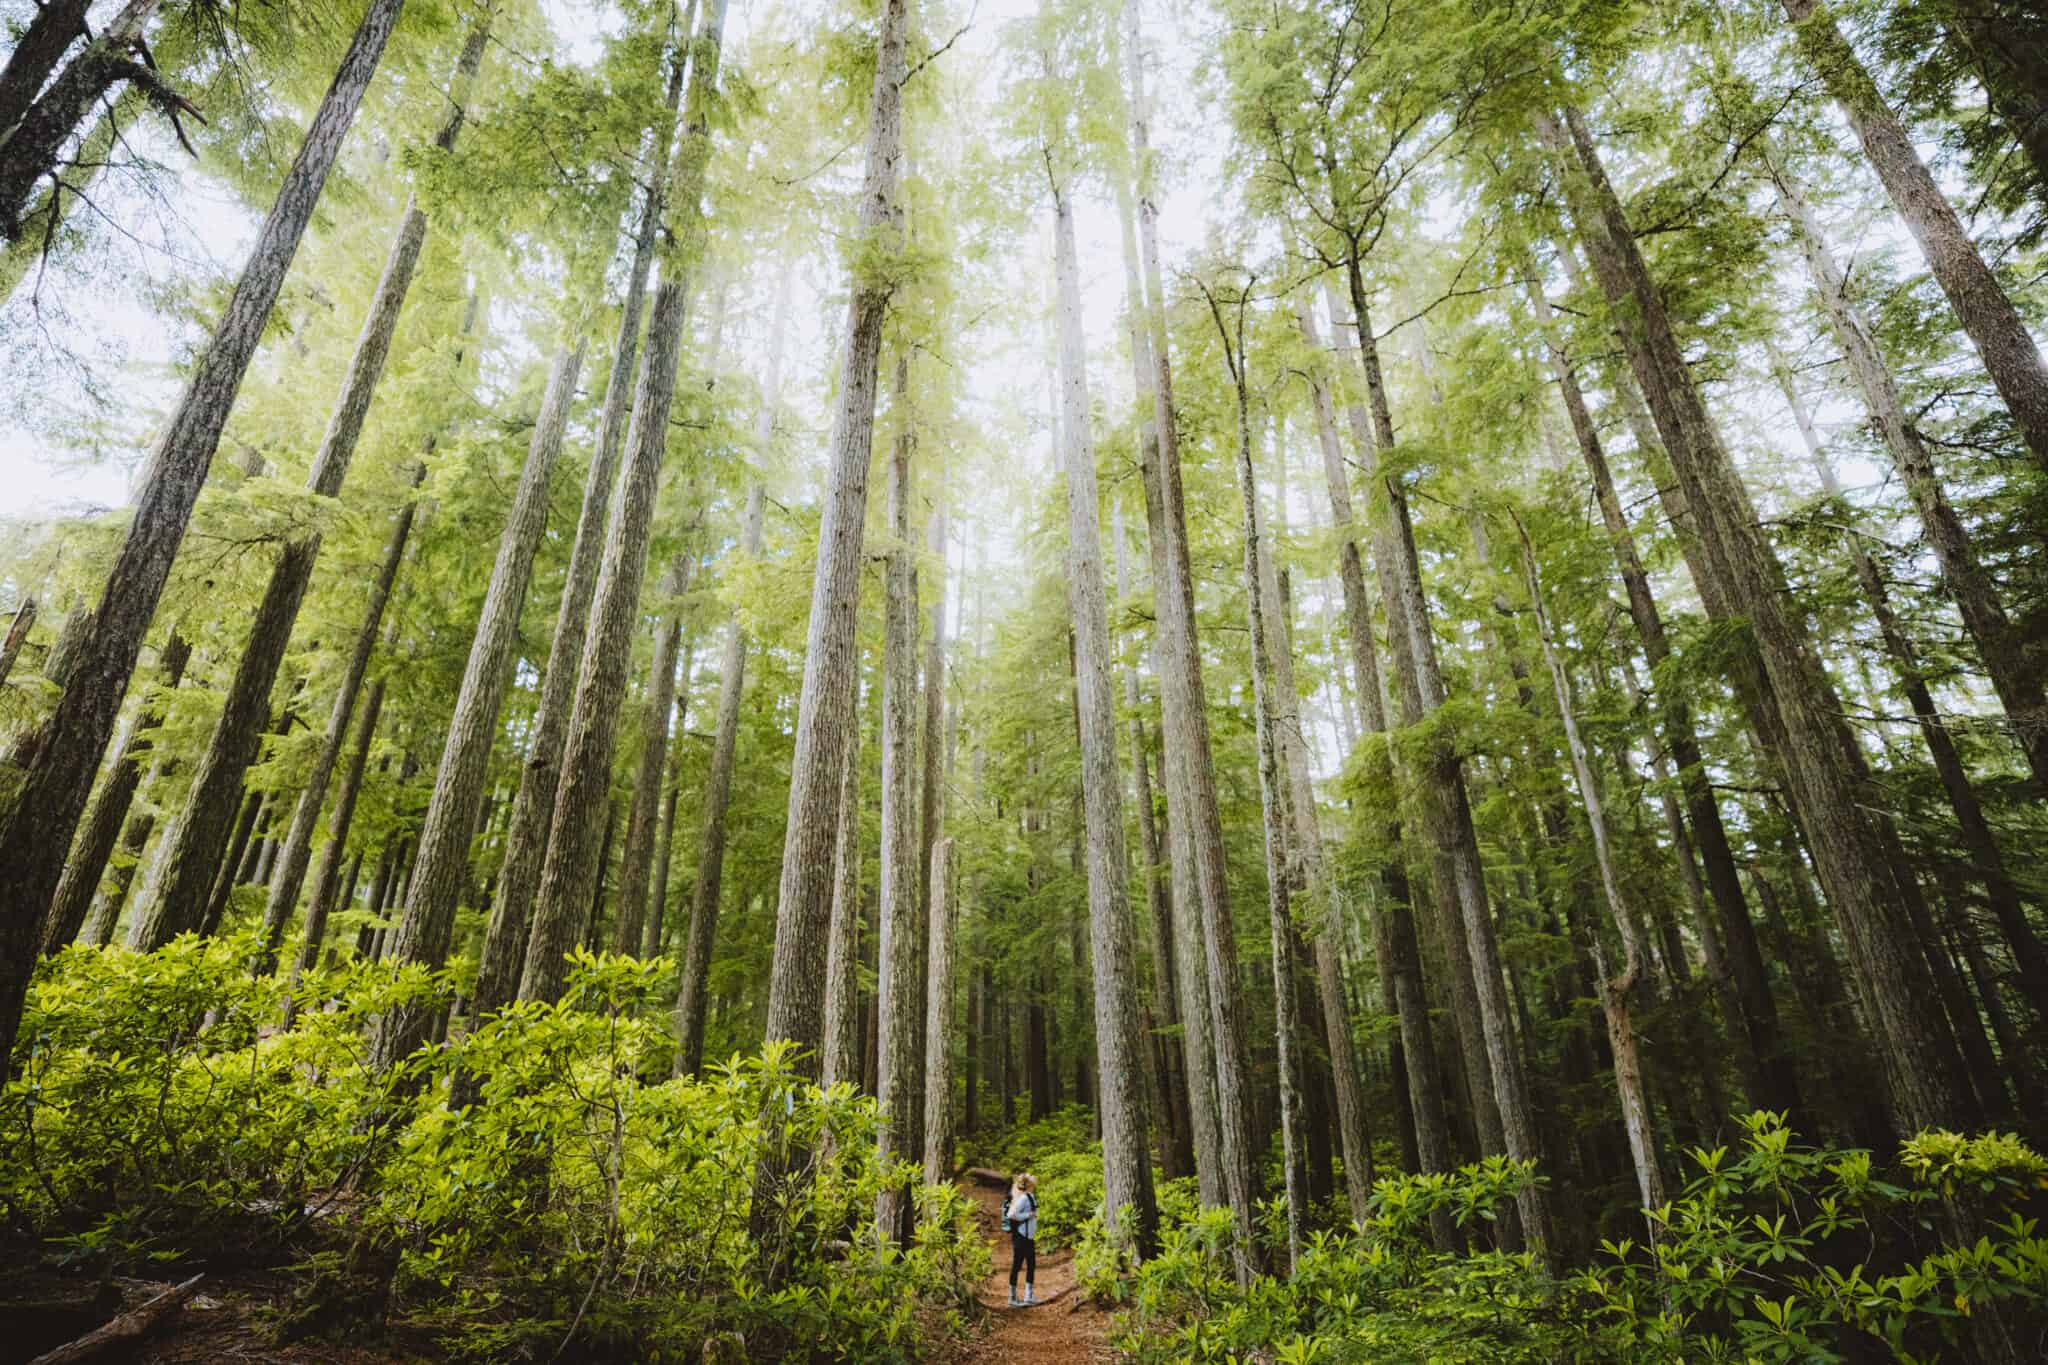 Forest Bathing: Why You Should Try This Natural Immersion Experience